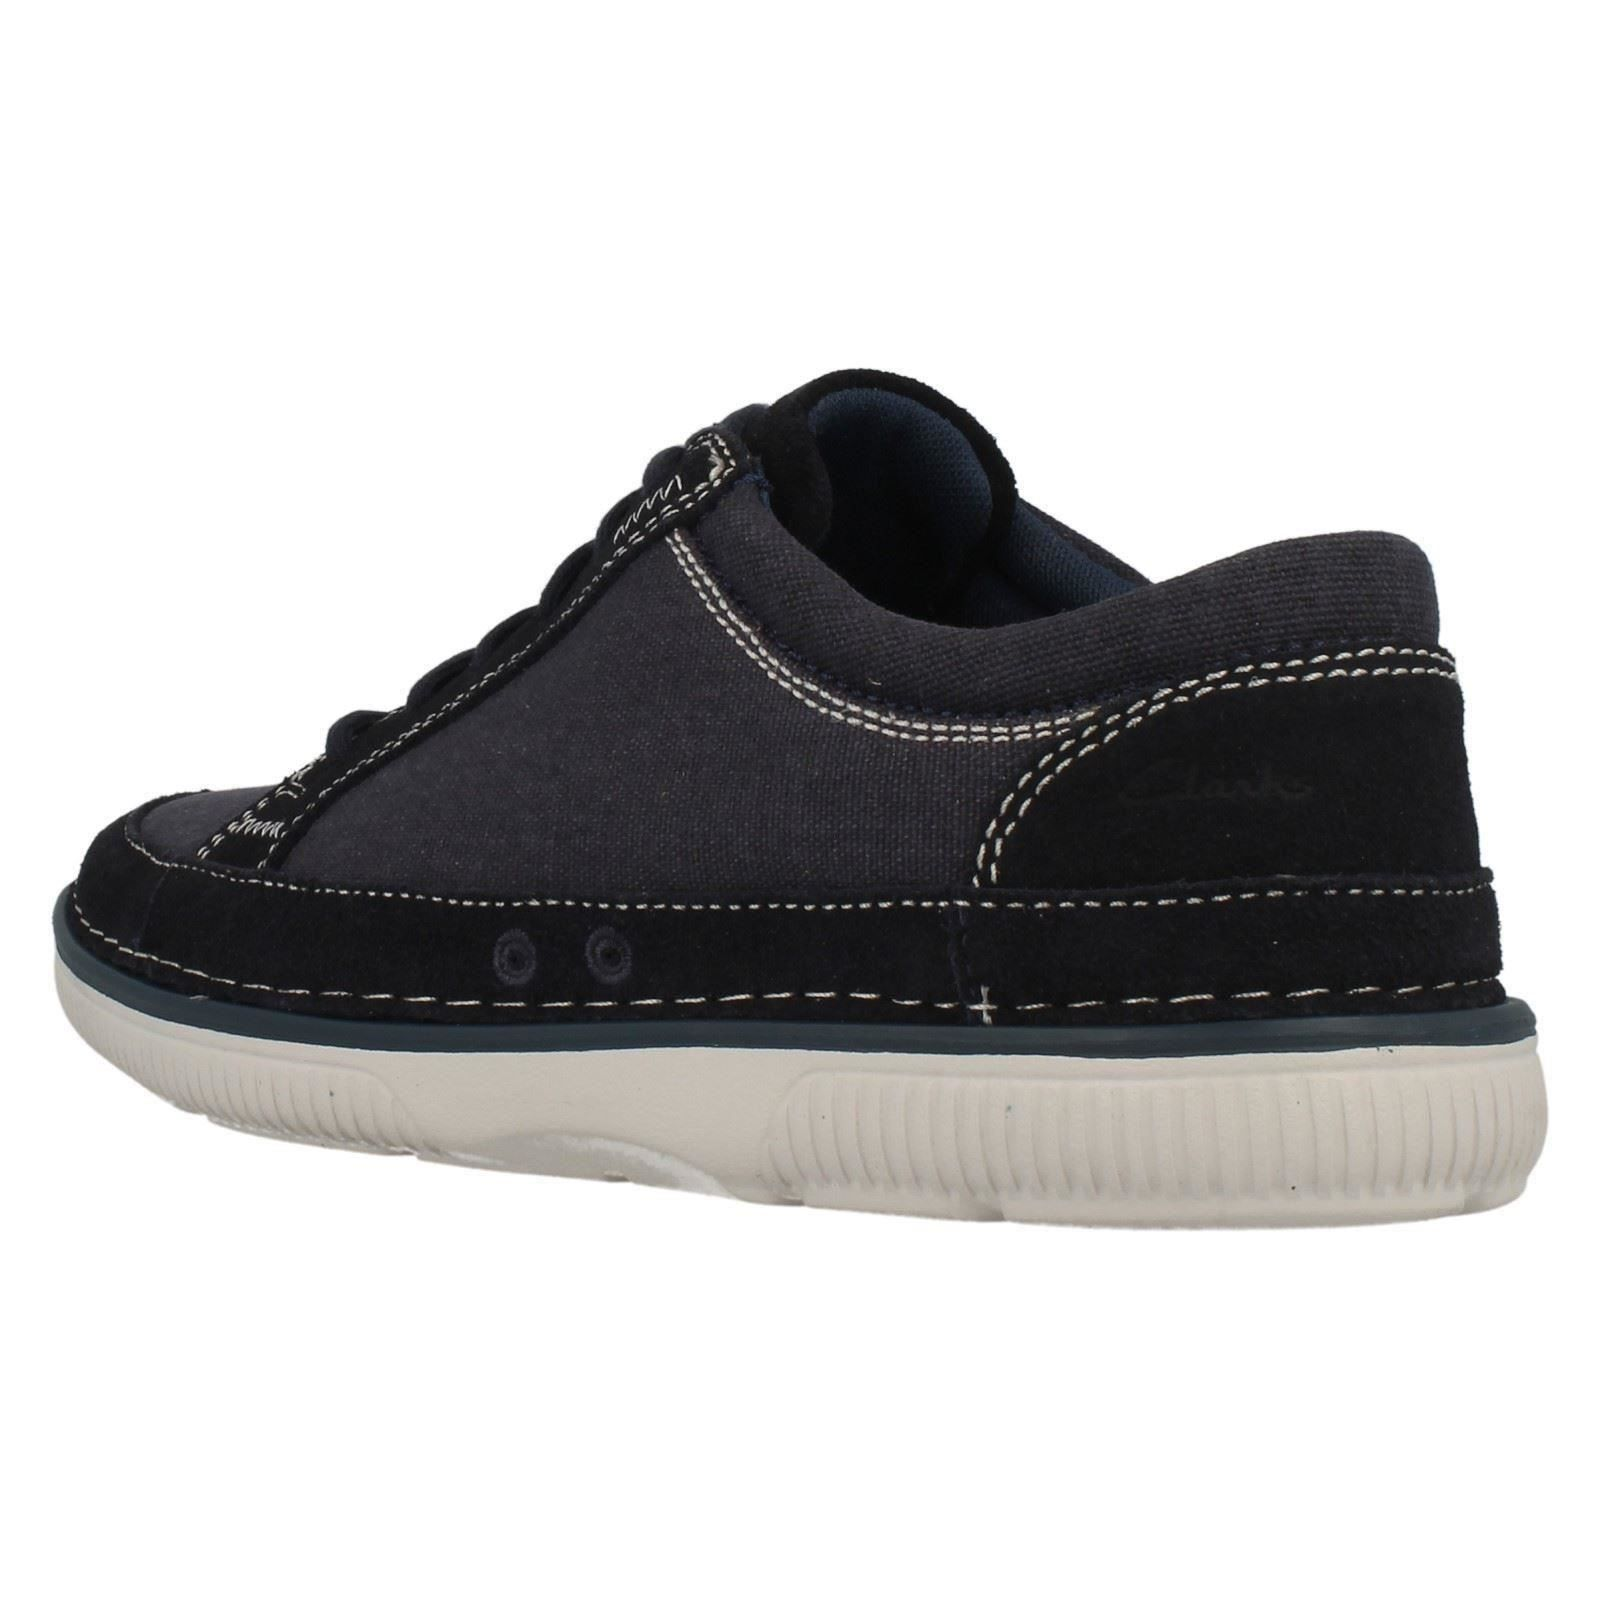 Herren Clarks Casual Lace Up Up Up Schuhes Sulley Ollie d35953